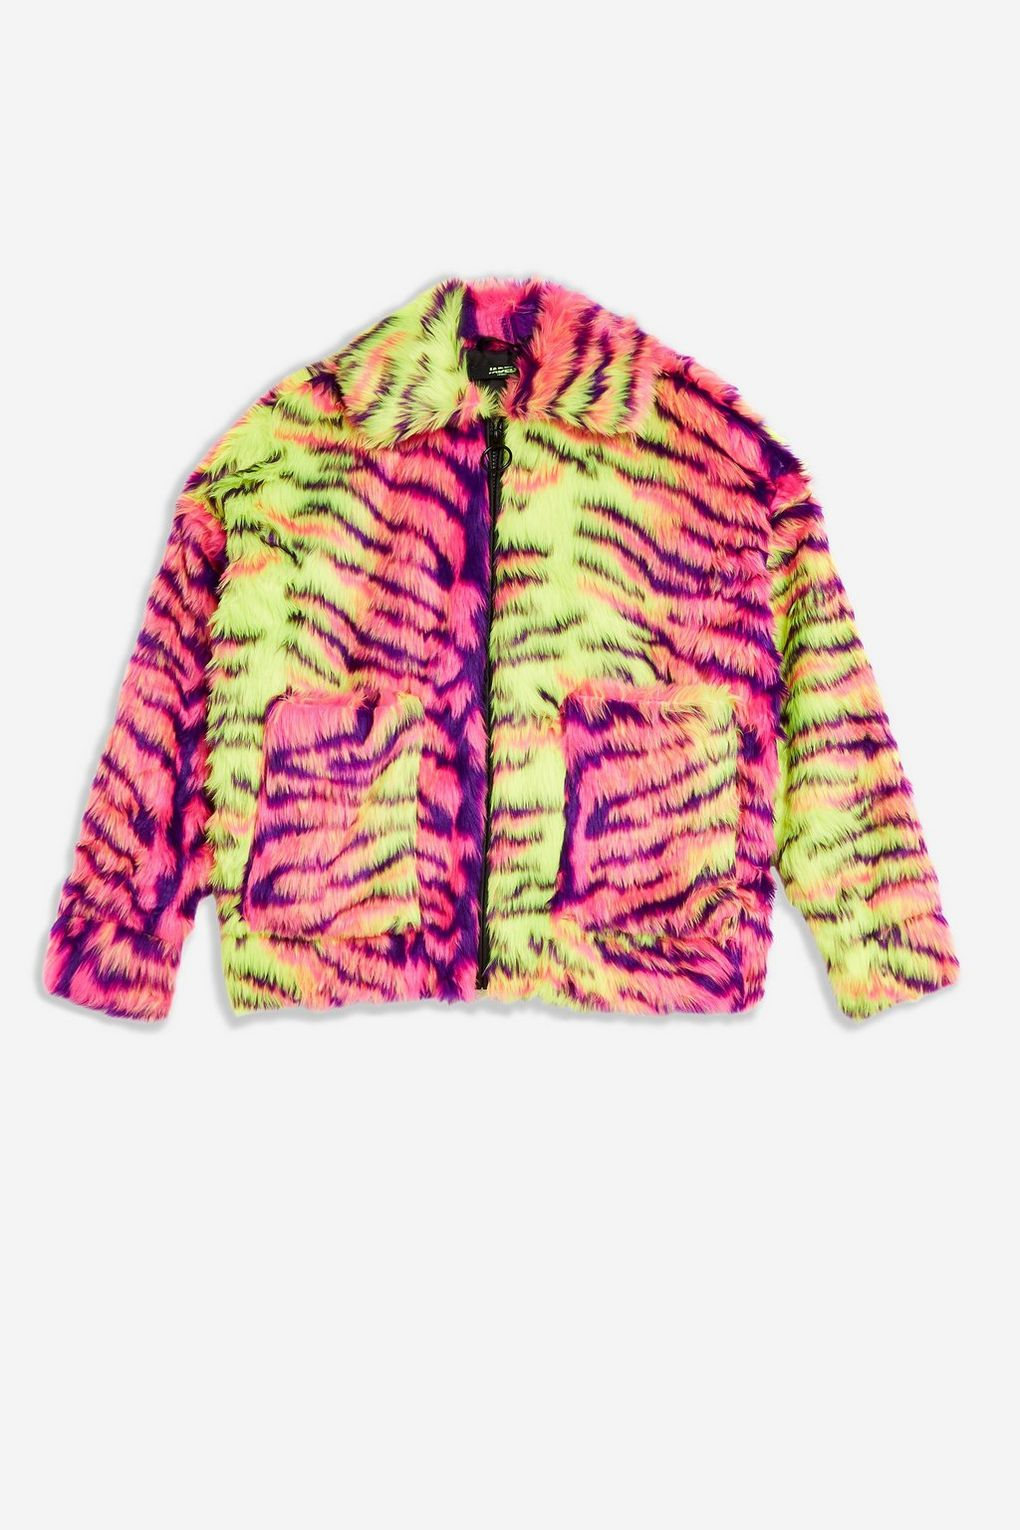 Neon Tiger Faux Fur By Jaded London